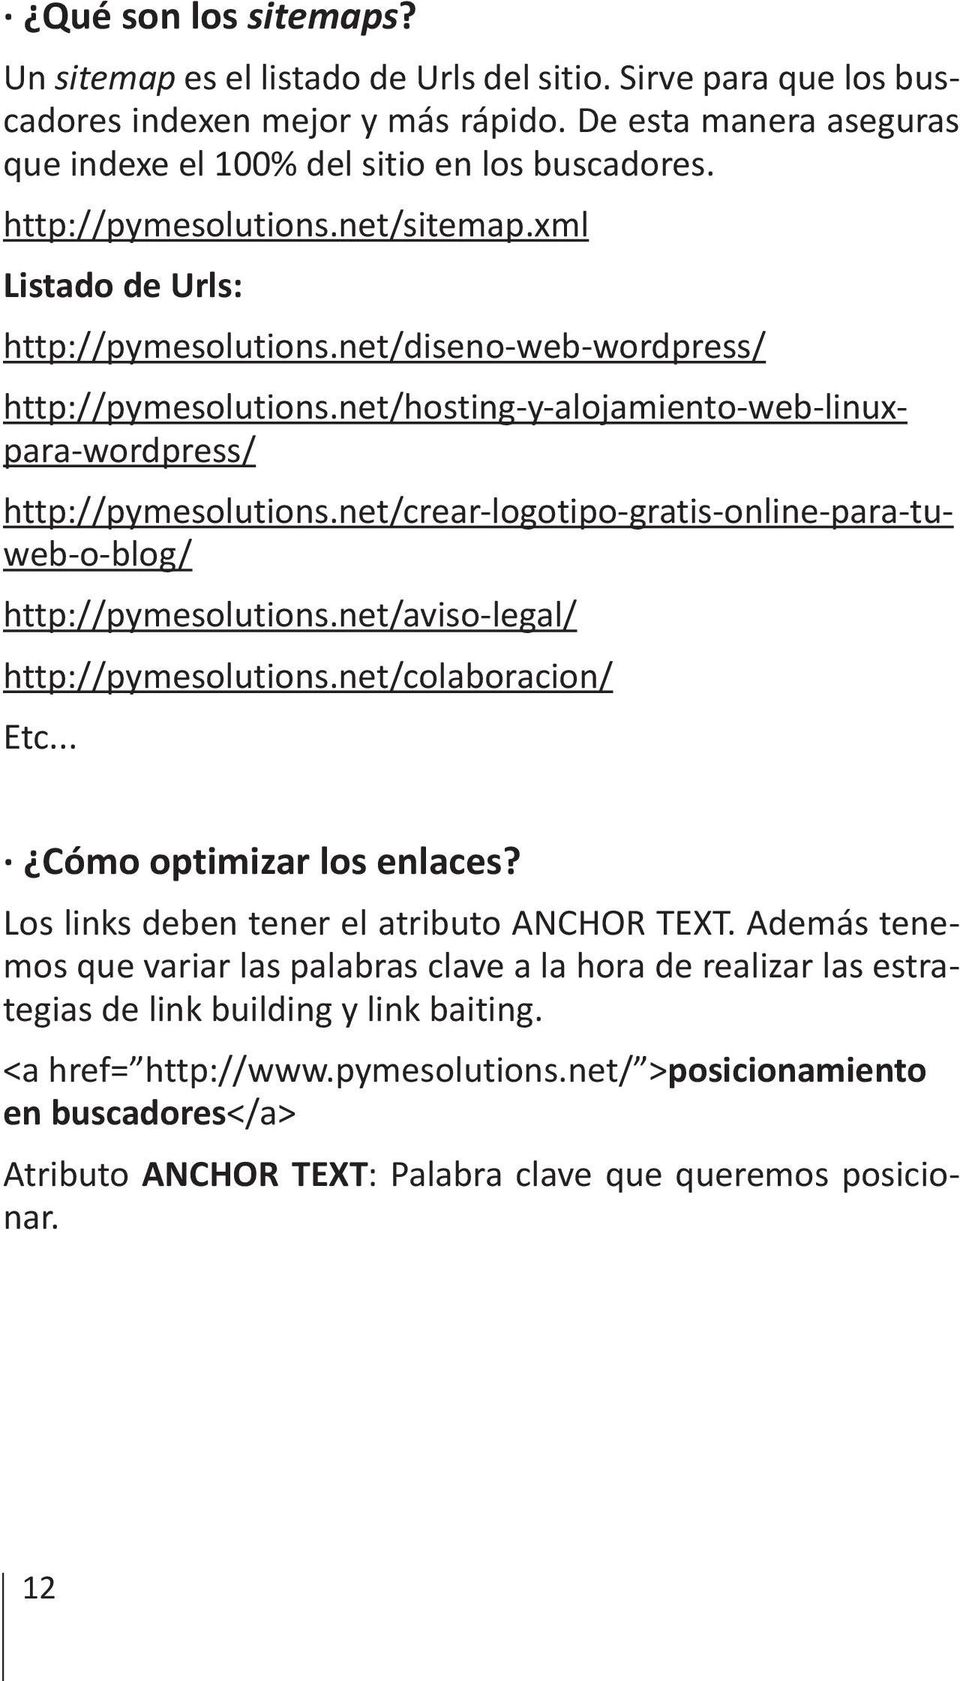 net/crear-logotipo-gratis-online-para-tuweb-o-blog/ http://pymesolutions.net/aviso-legal/ http://pymesolutions.net/colaboracion/ Etc... Cómo optimizar los enlaces?